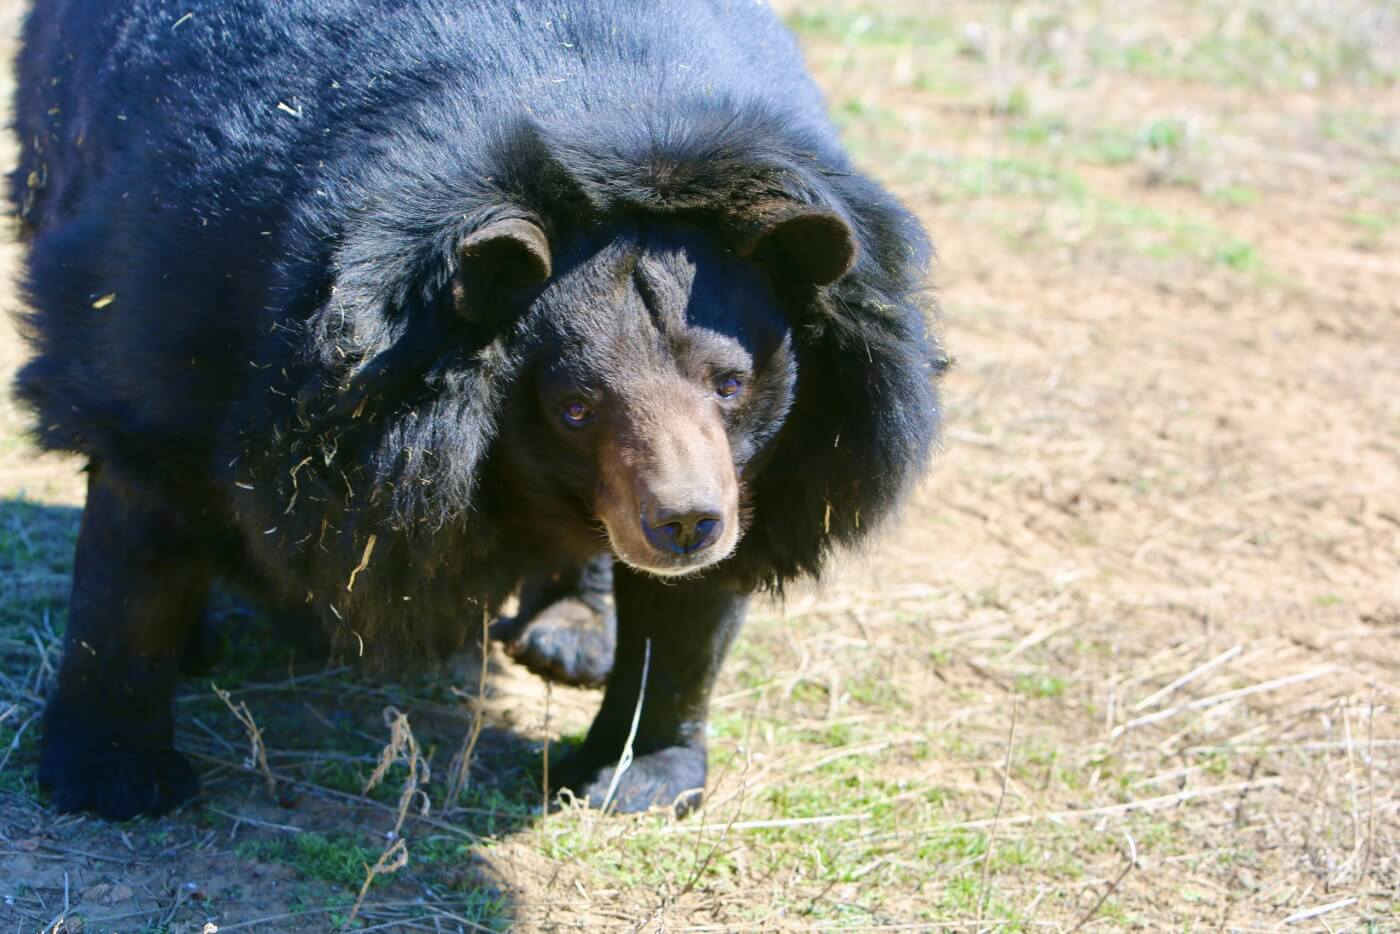 2020: Dillan the Bear Rescued from Pennsylvania Hunting Club